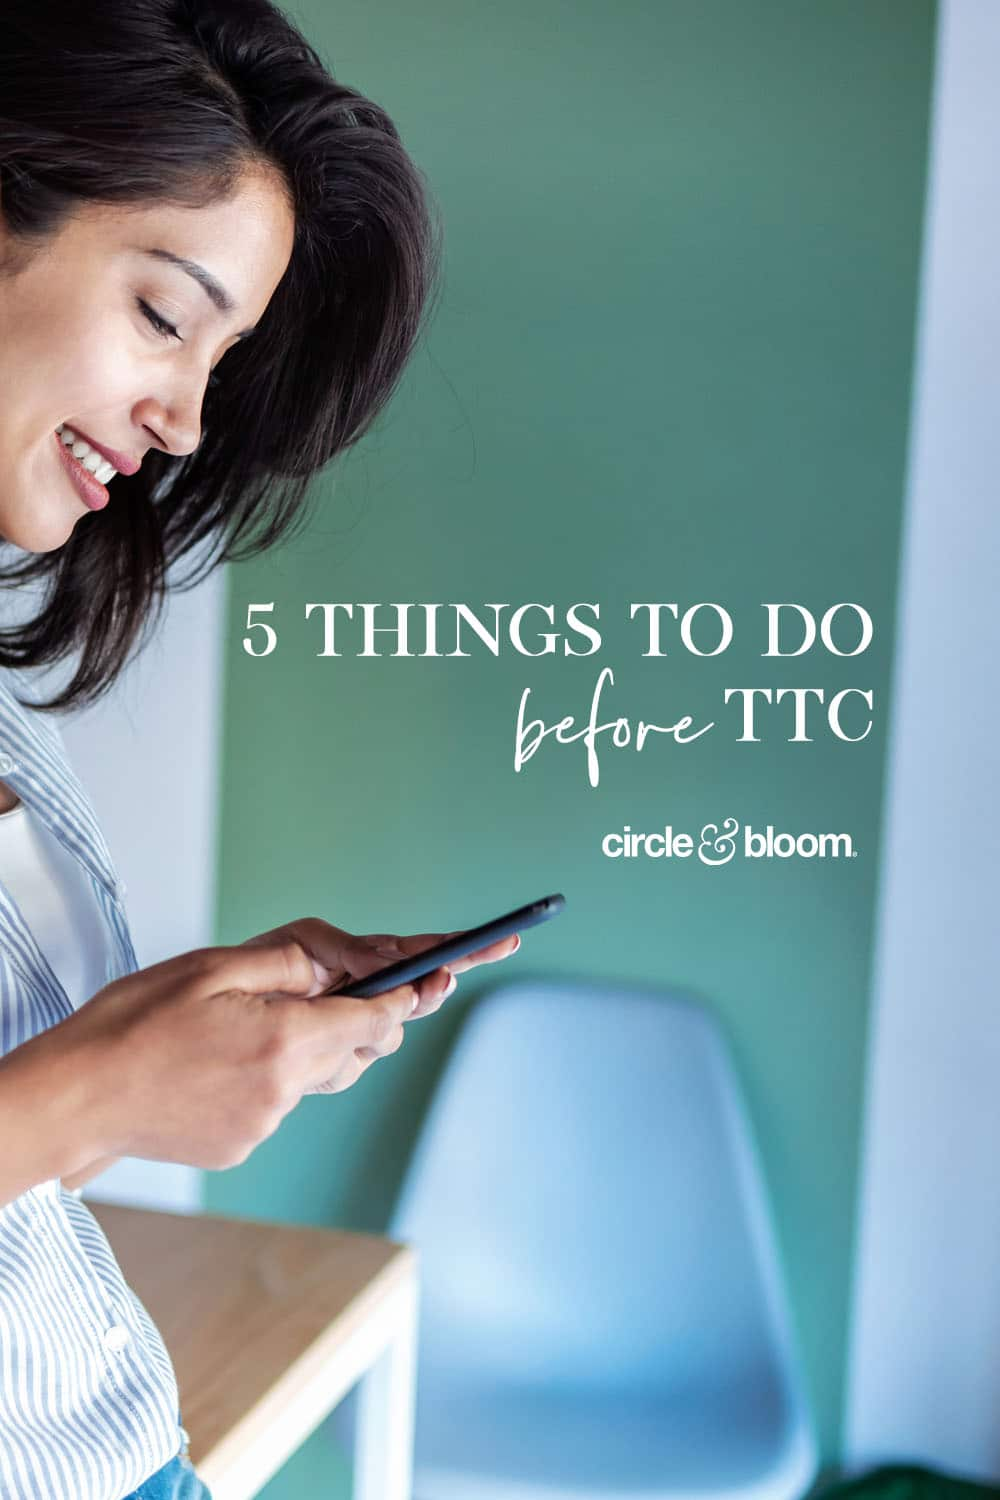 5 Things to Do Before TTC